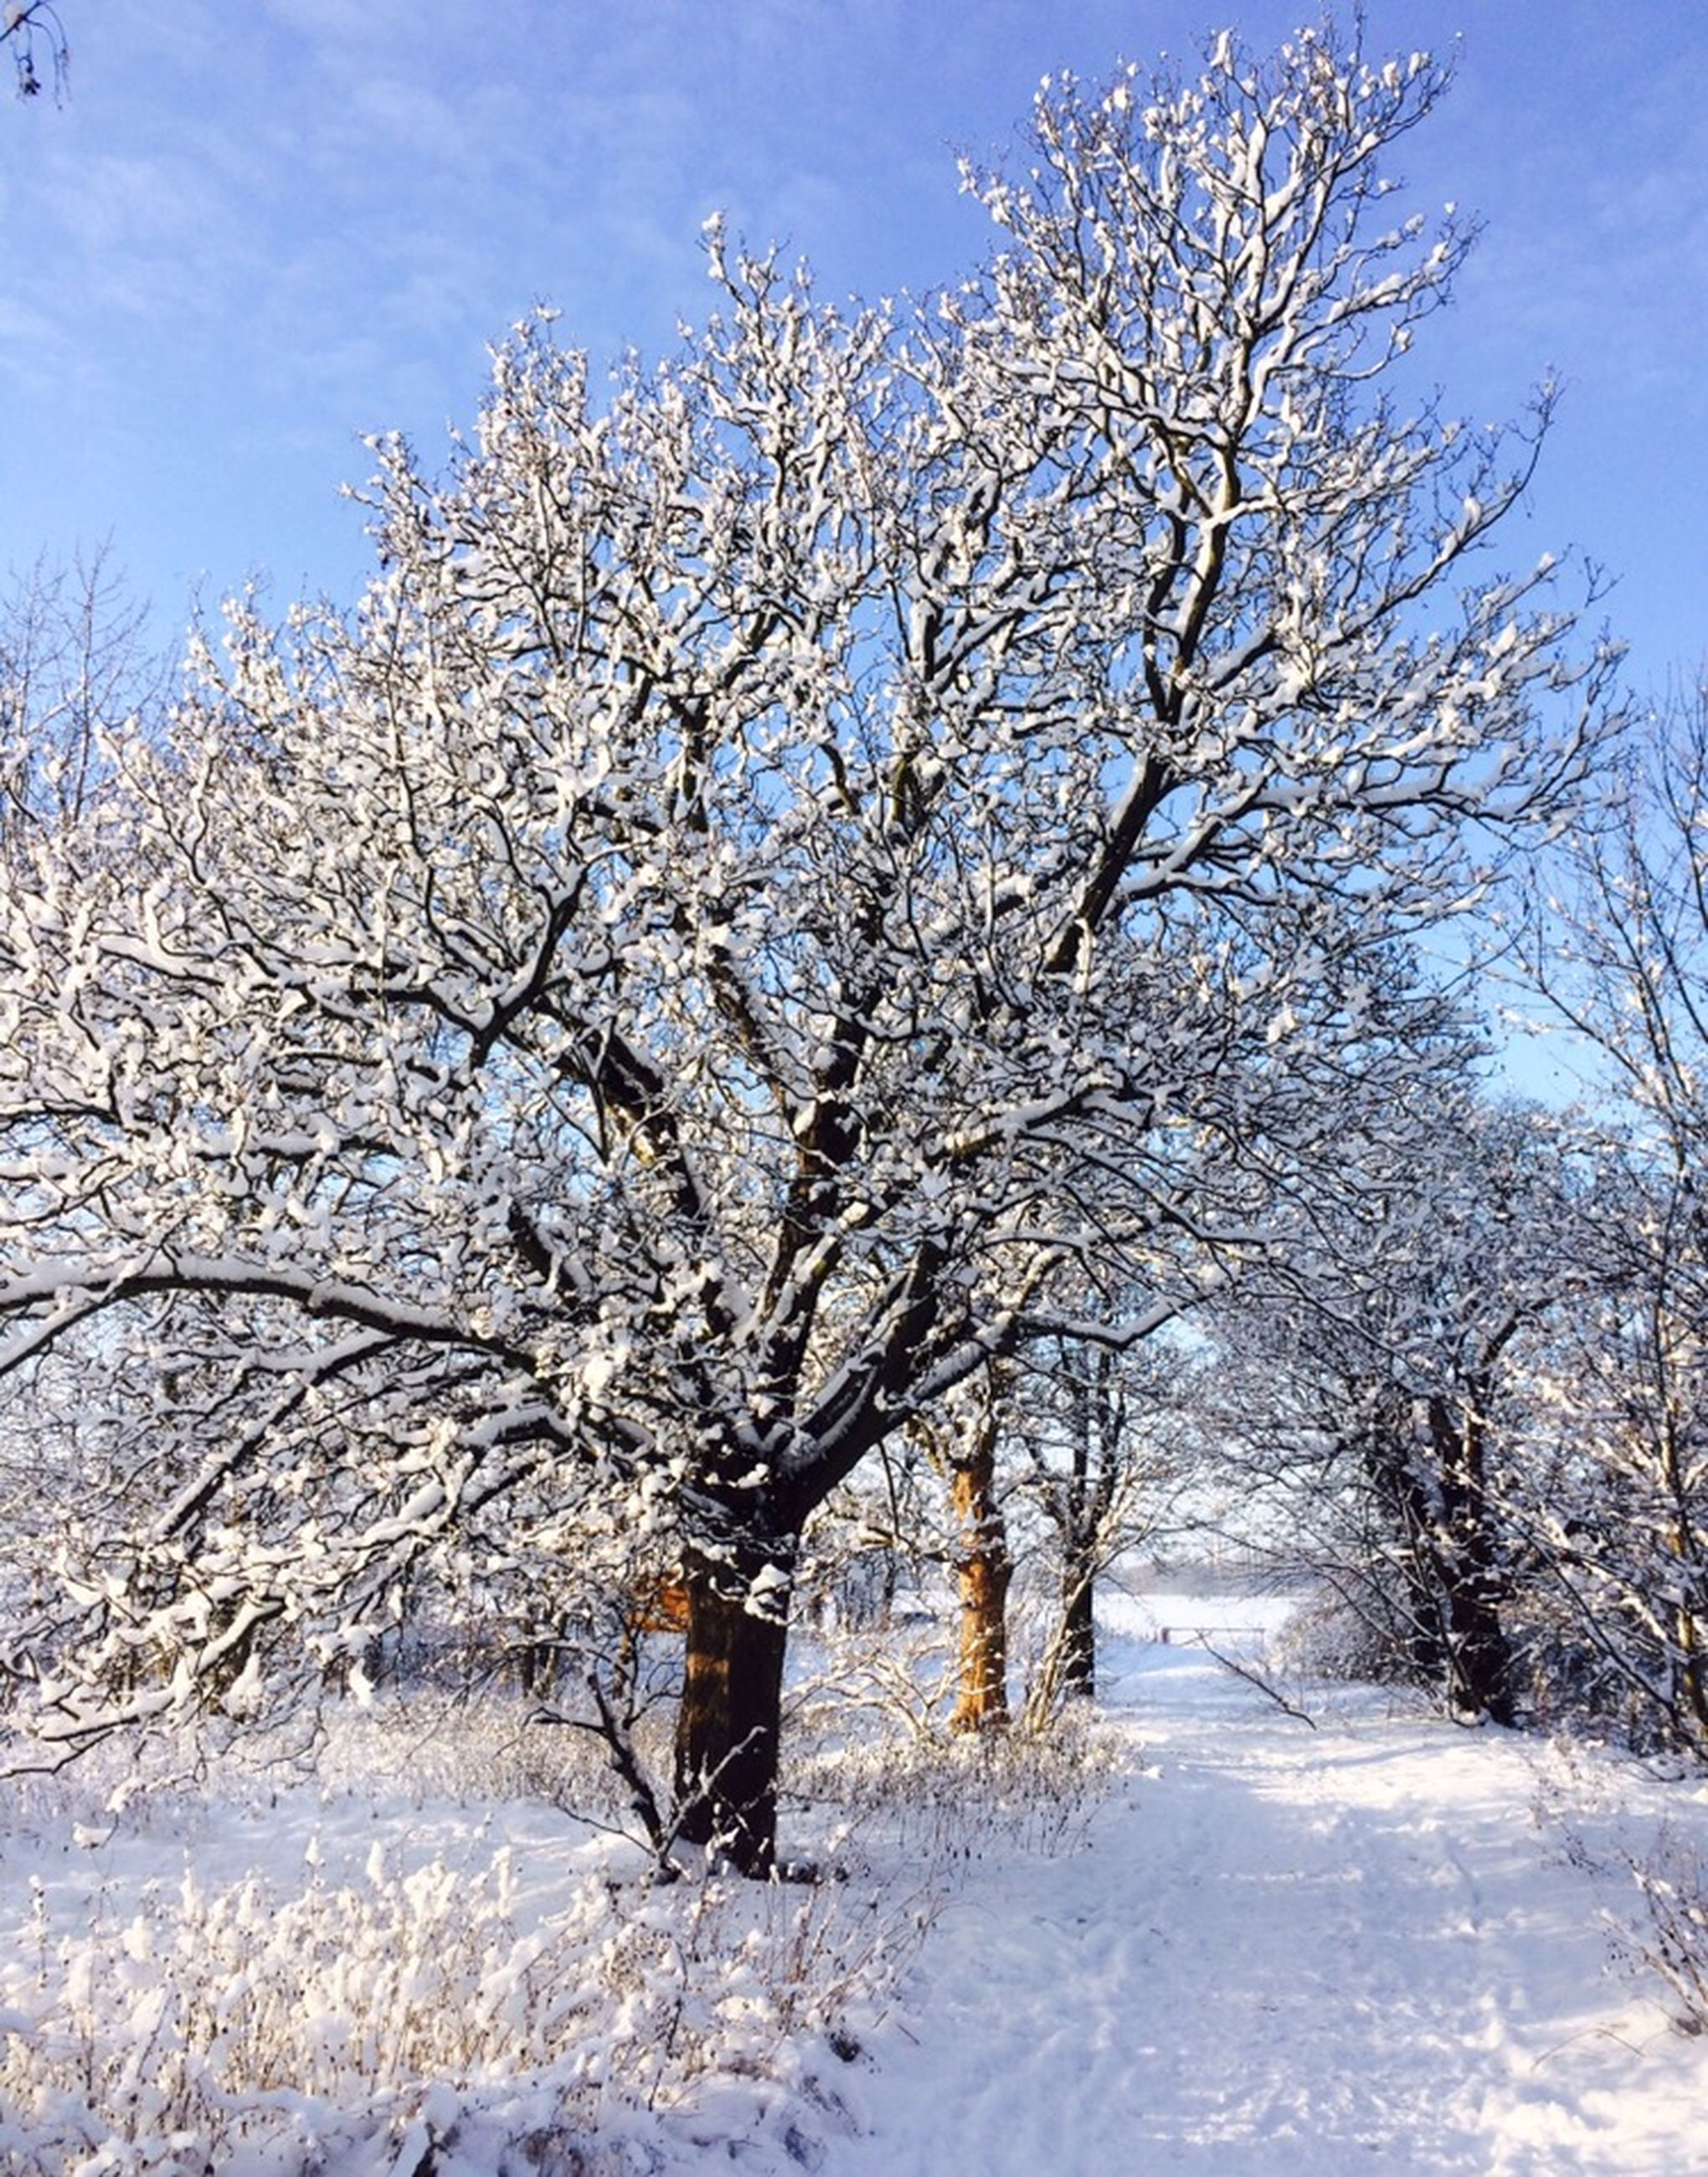 snow, tree, winter, cold temperature, season, branch, bare tree, white color, nature, beauty in nature, sky, tranquility, tranquil scene, weather, growth, scenics, landscape, covering, flower, cherry blossom